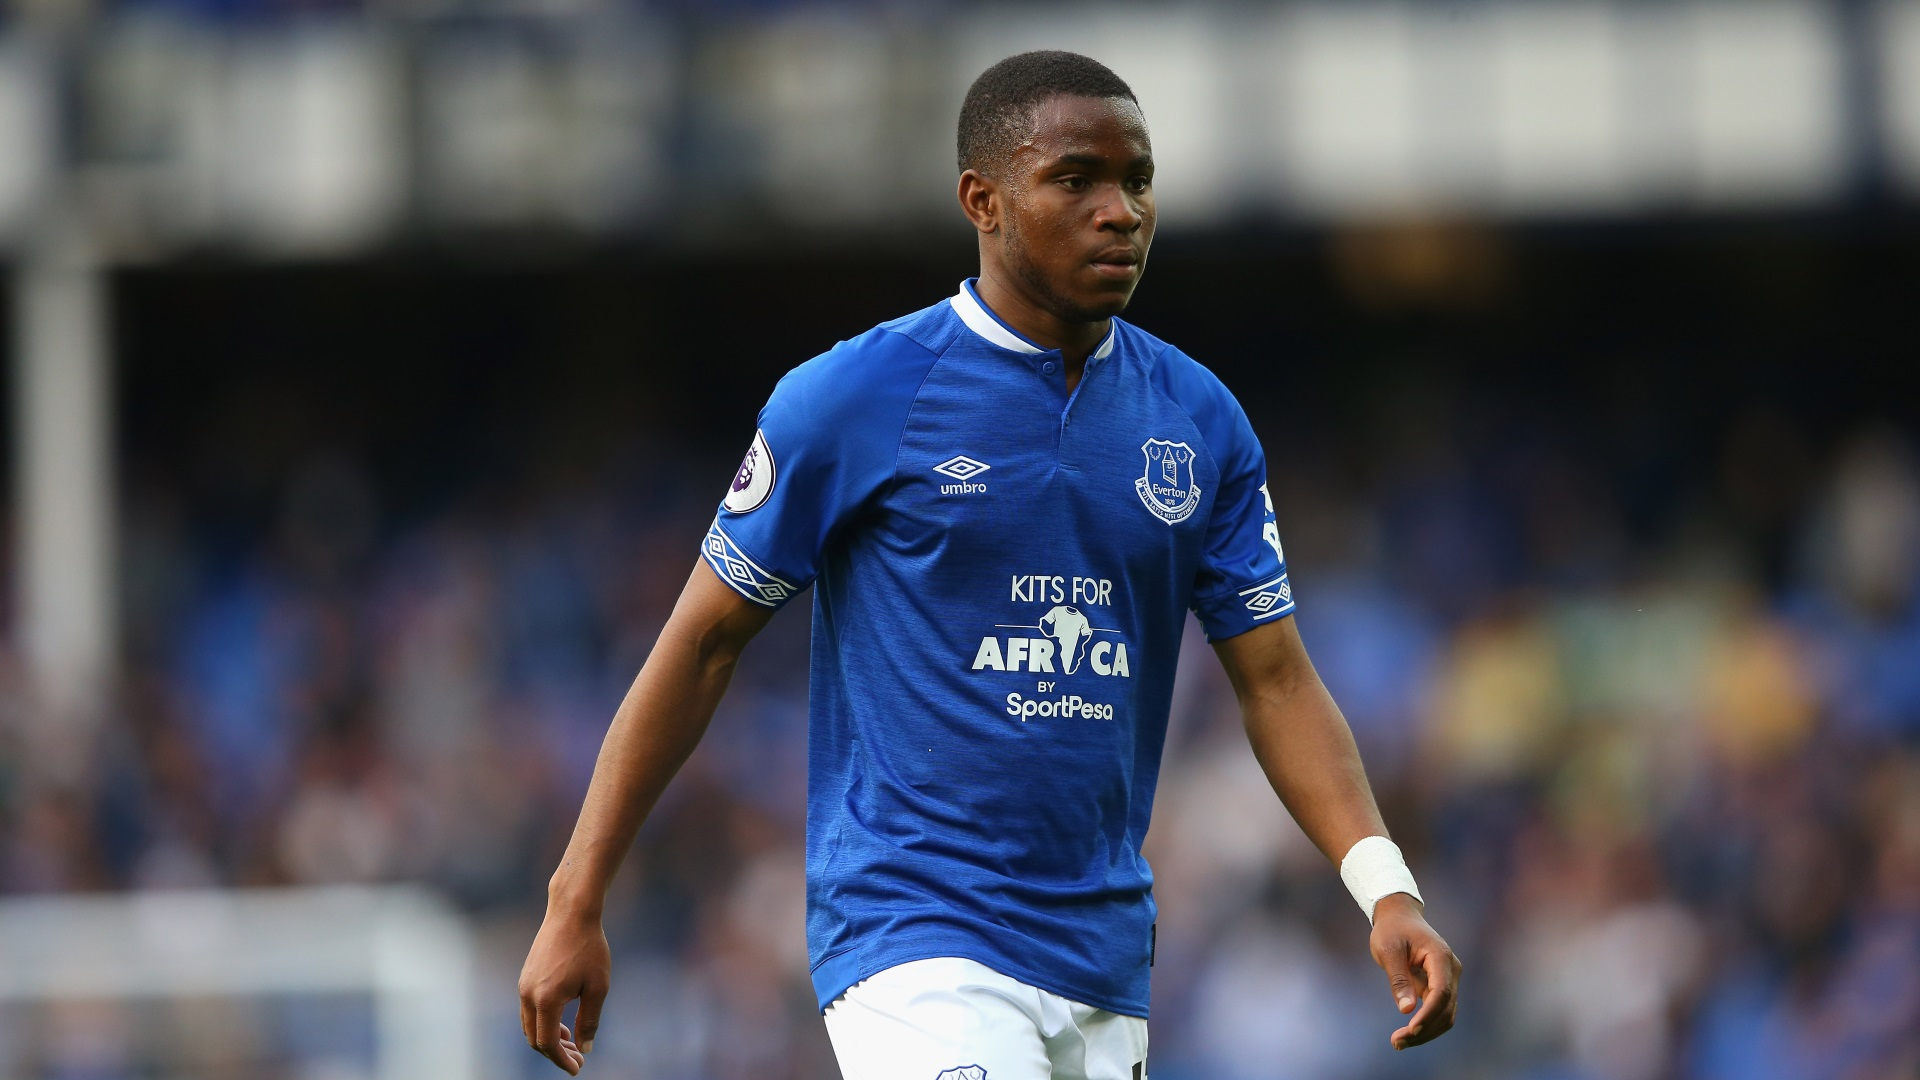 Ademola Lookman of Everton